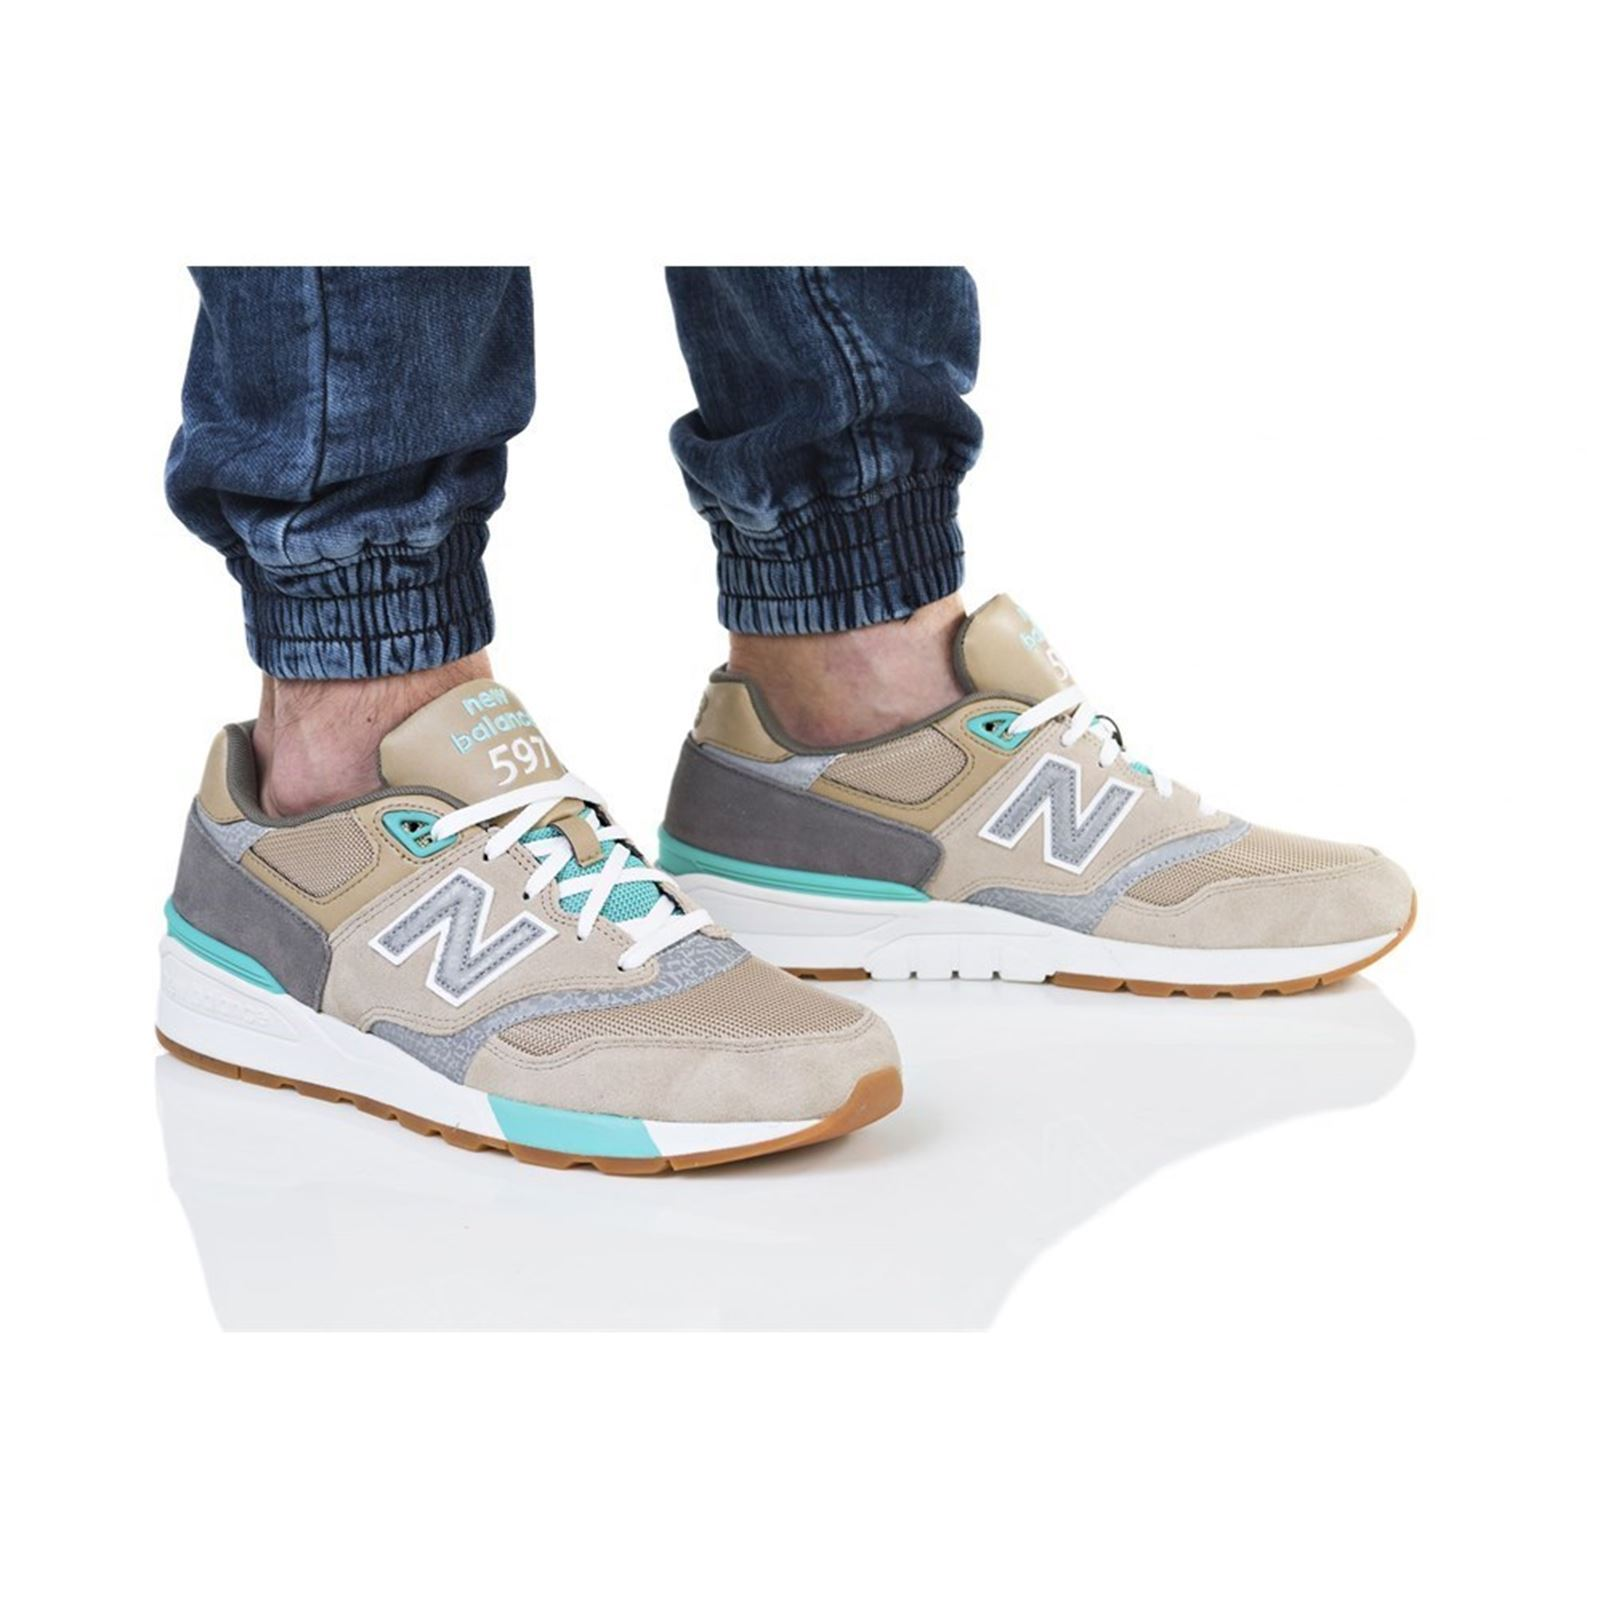 low priced 46526 5e71a NEW BALANCE 597 - Baskets basses - beige